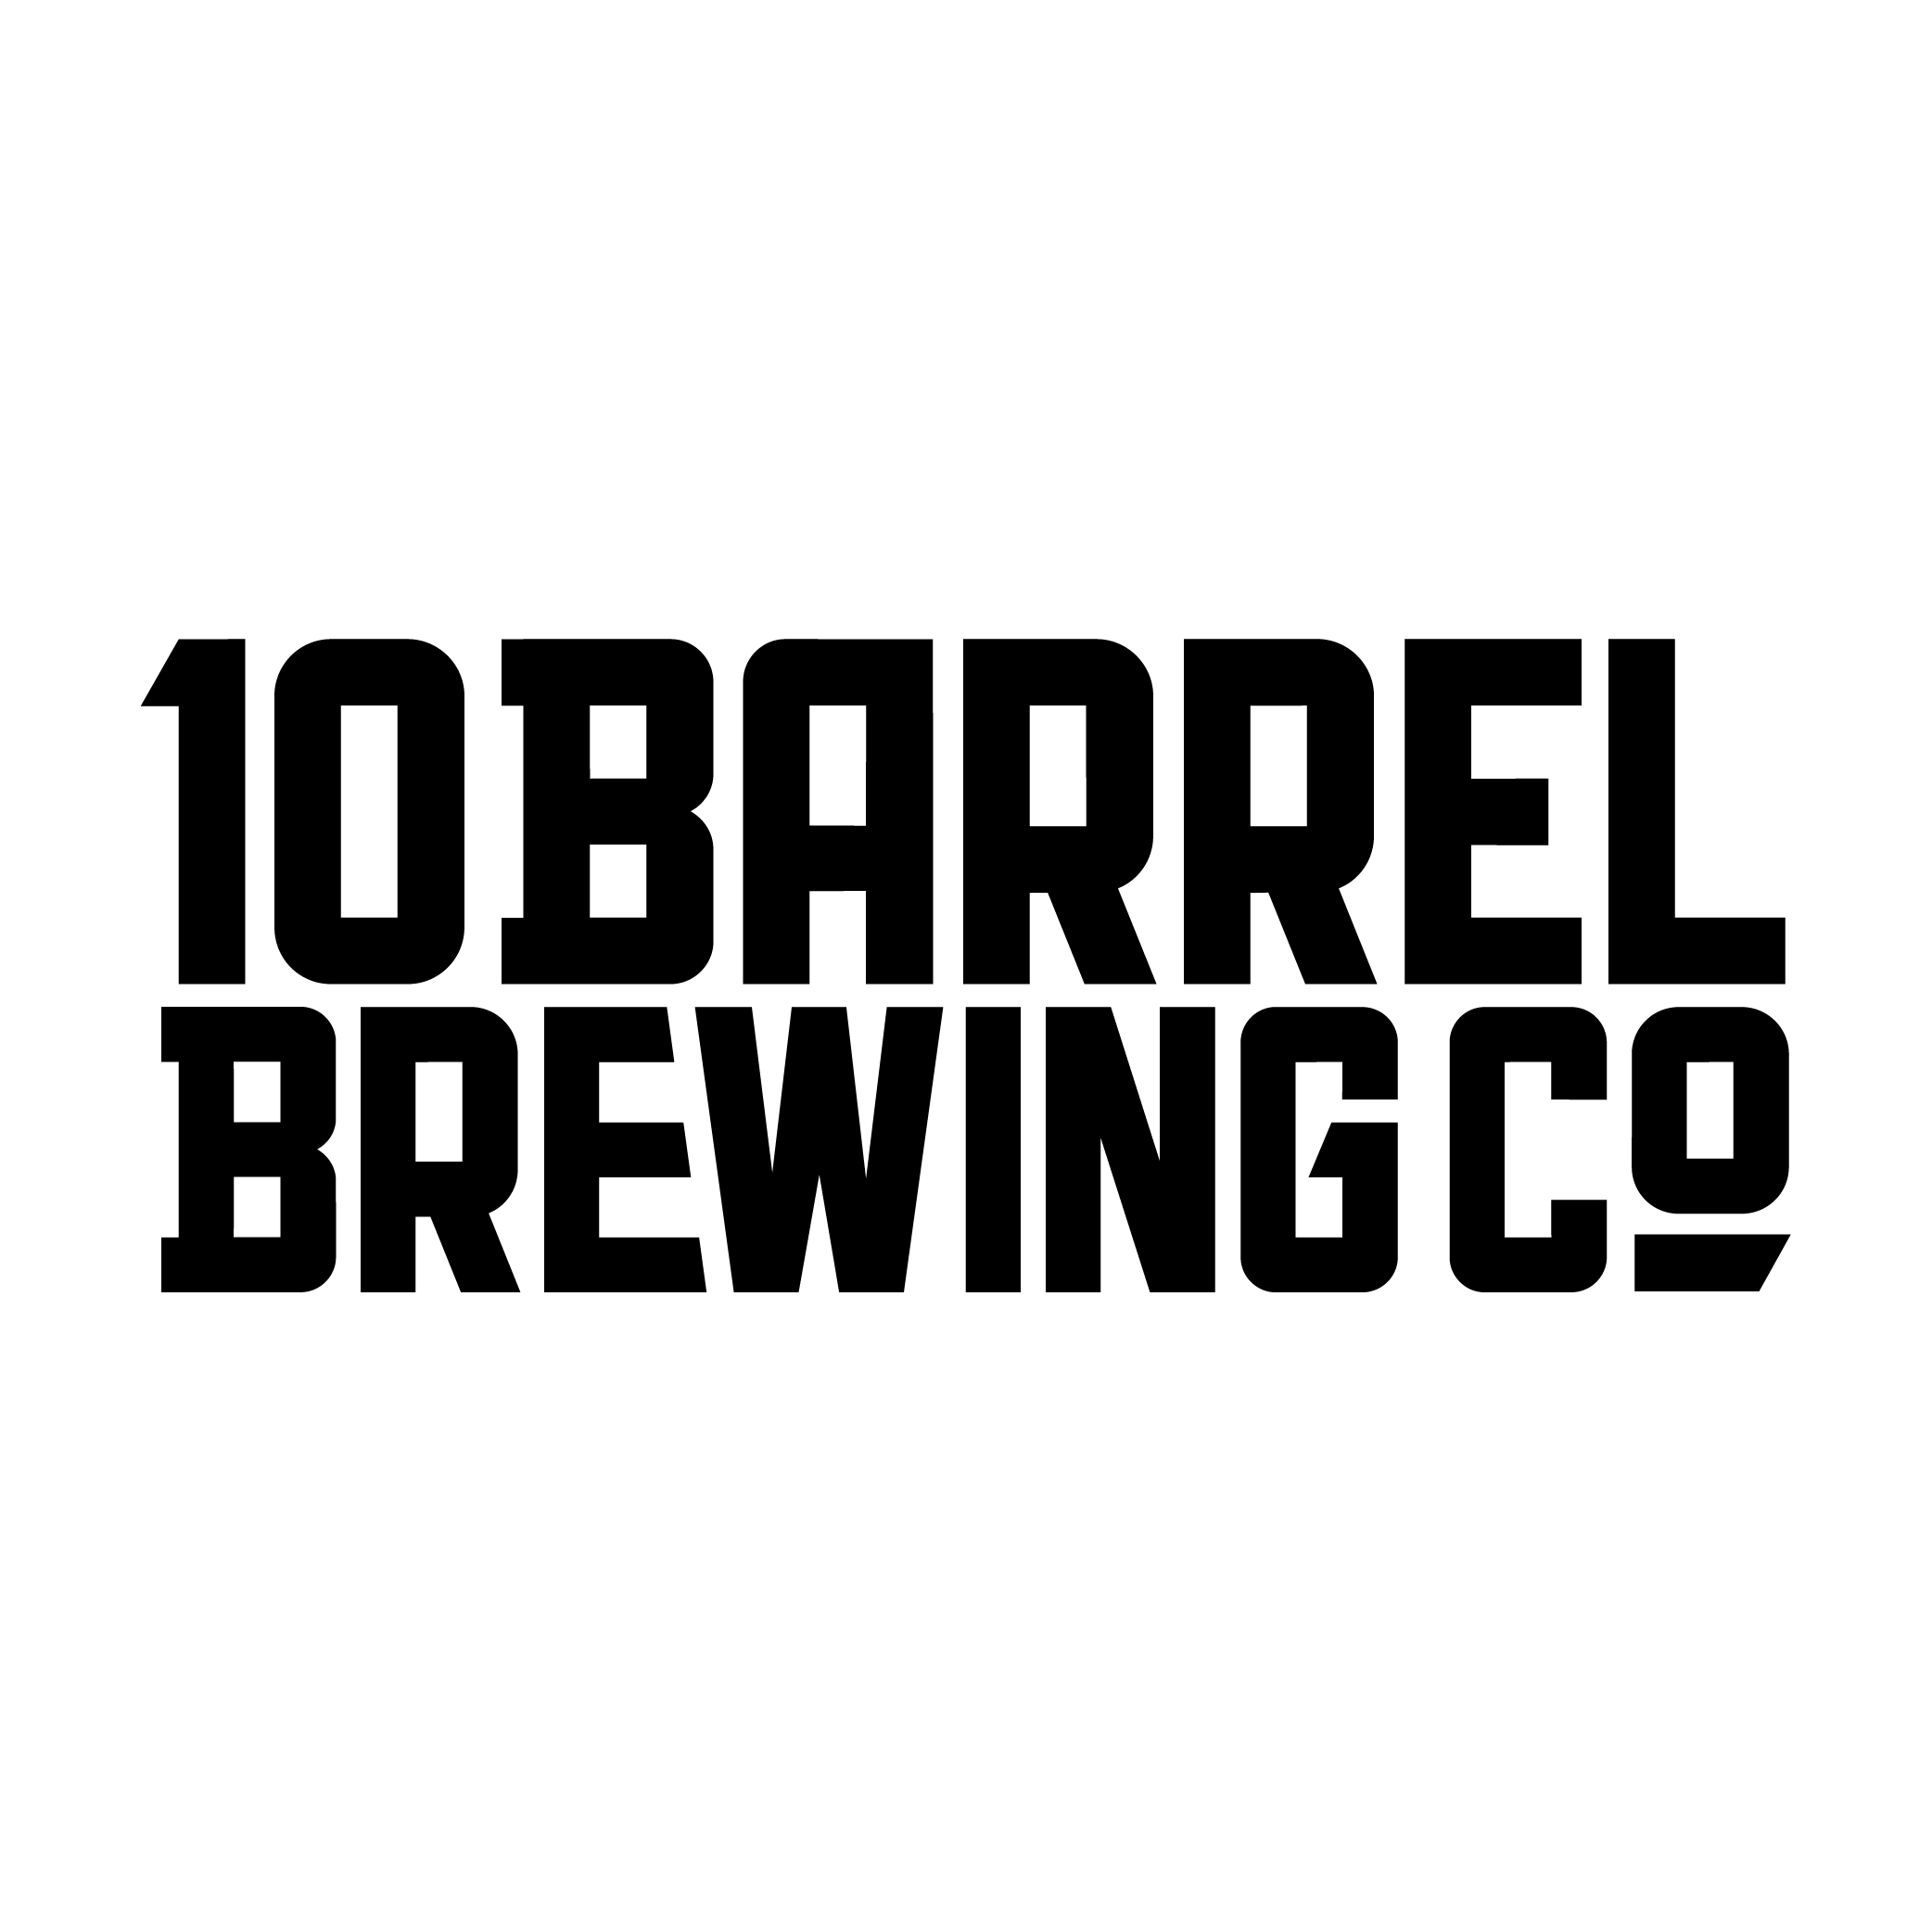 10 Barrel Brewing Co   It all started back in 2006 with 3 guys in Bend, Oregon who shared one simple mindset: brew beer, drink beer and have fun doing it. Come try it out at Full Pour!